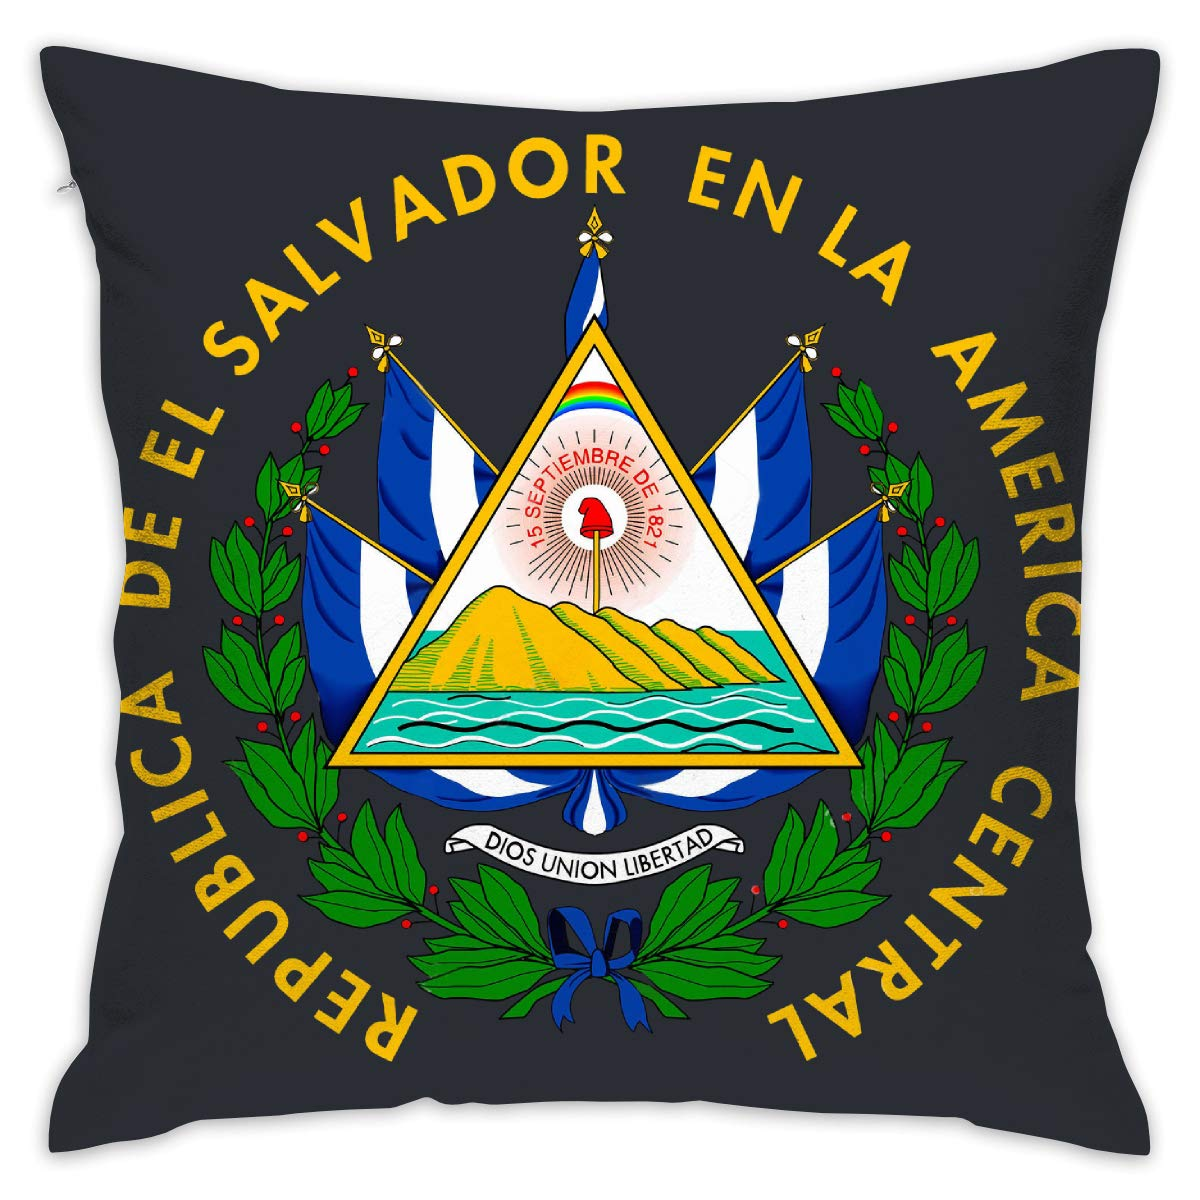 Amazon.com: Hdsghgj El Salvador Printing Hold Pillow Home ...